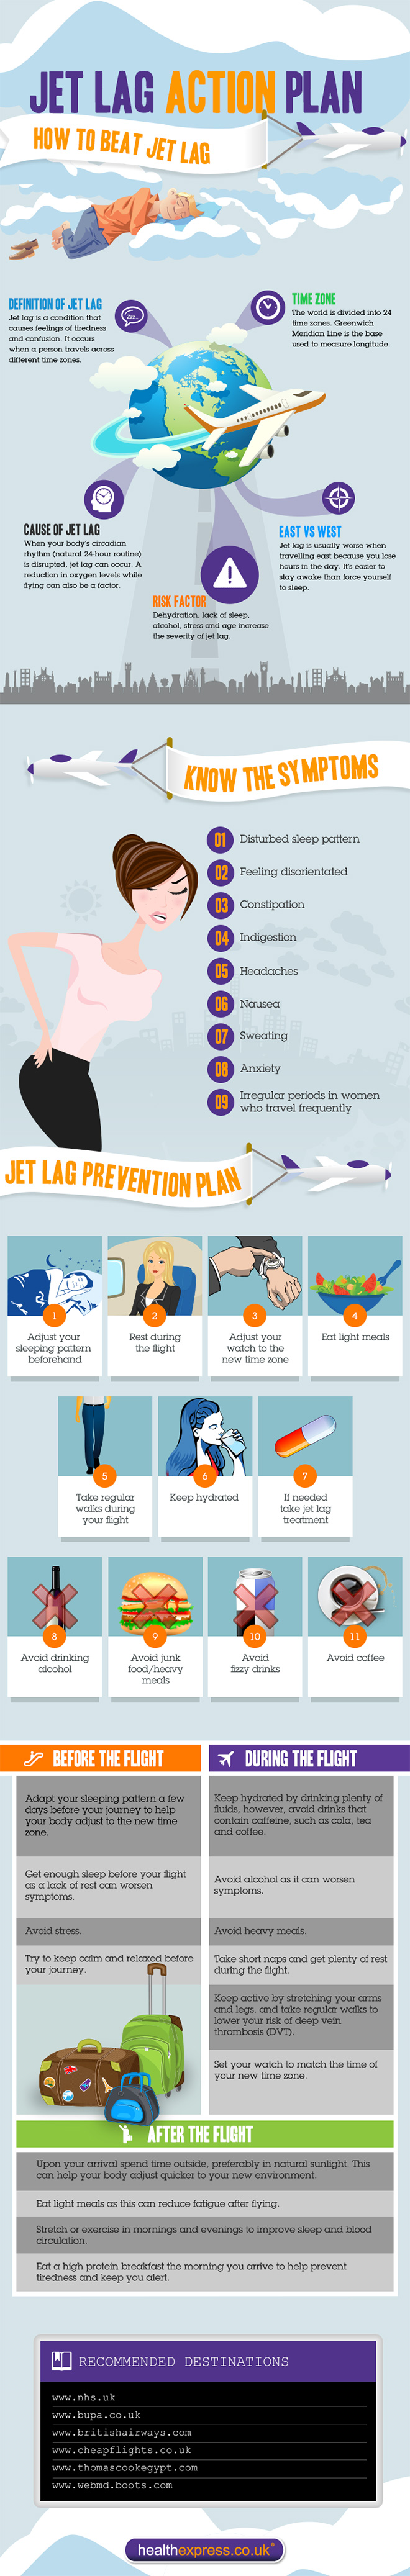 jet-lag-action-plan--how-to-beat-jet-lag_518a6ded93575